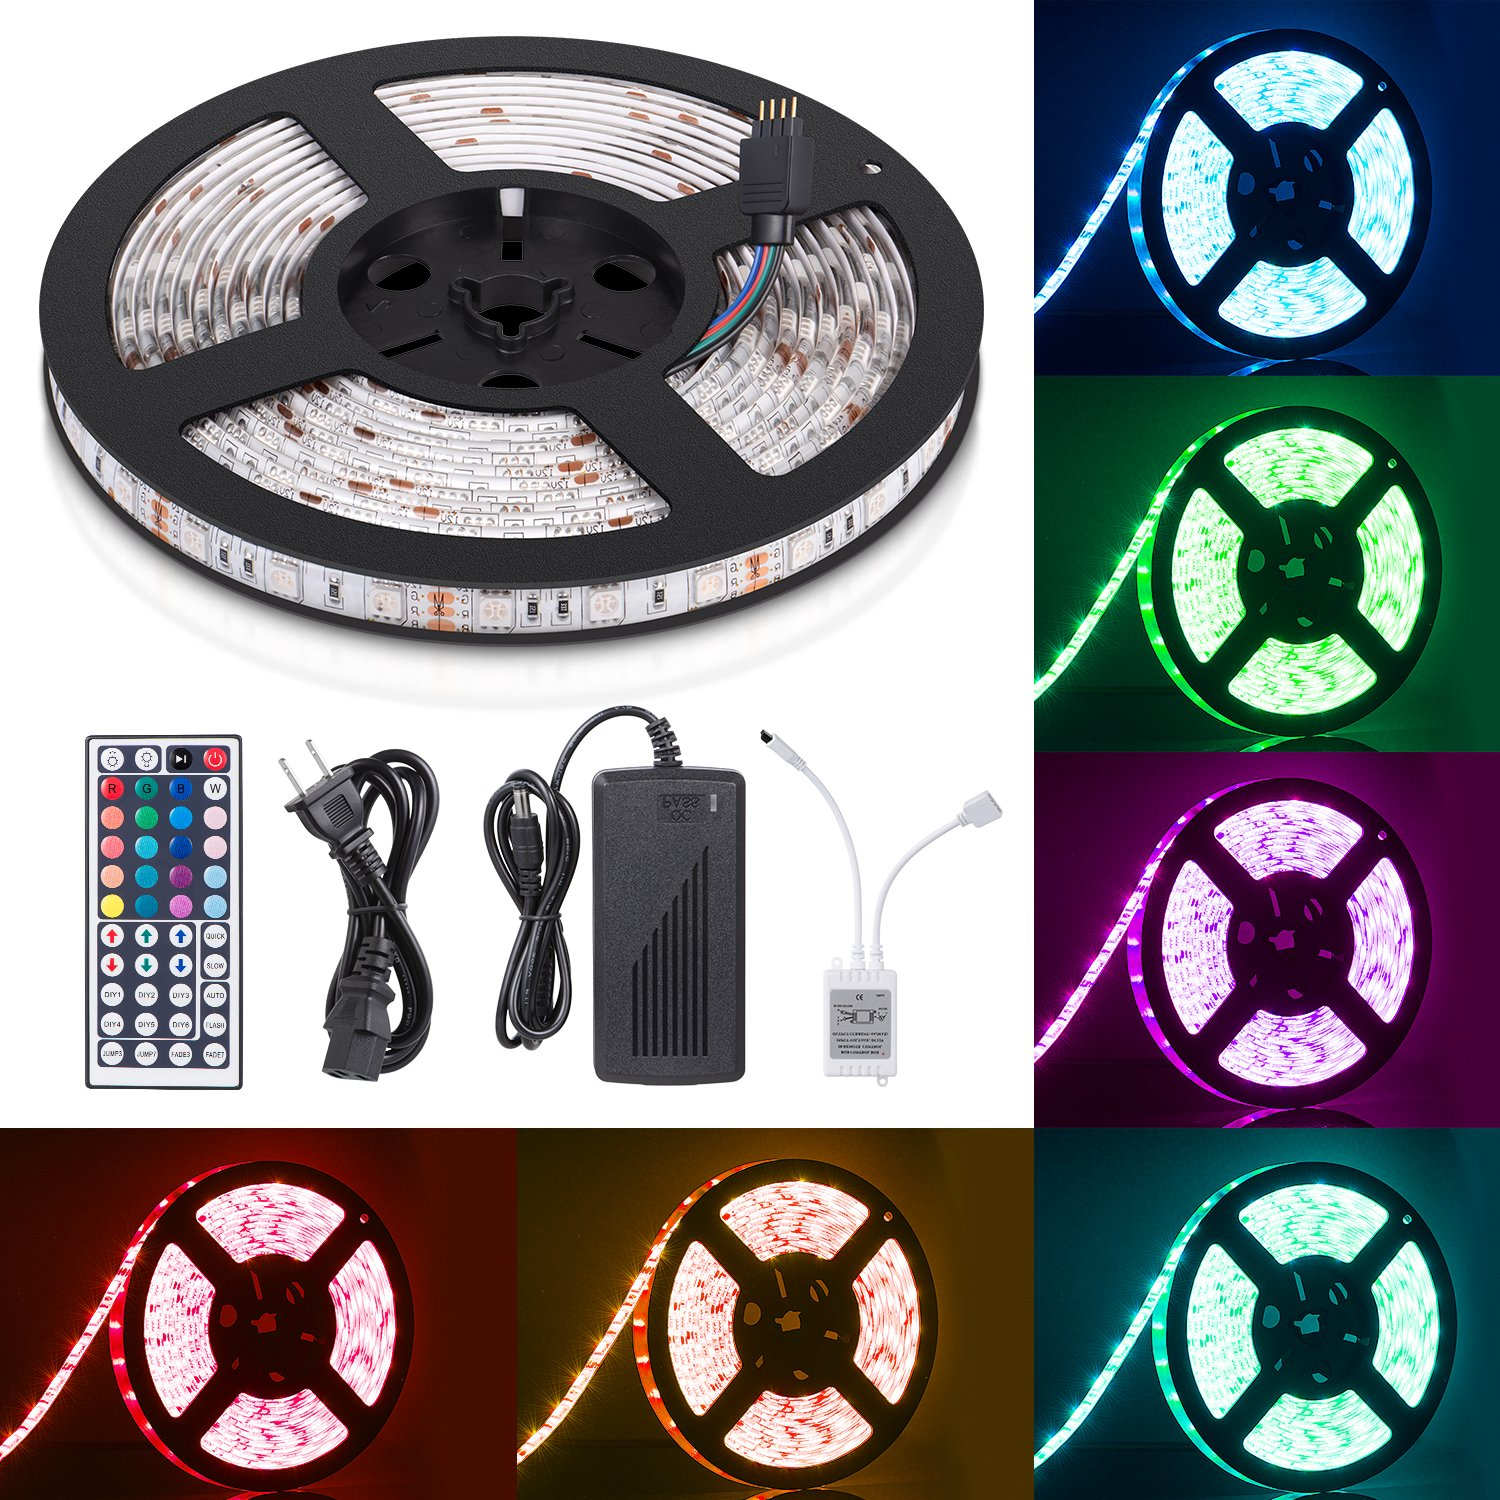 Sunnest 16.4ft LED Flexible Strip Lights 300 Units SMD 5050 LEDs 12V DC Waterproof Light Strips RGB LED Light Strip Kit with 44Key Remote Controller and Power Supply for Kitchen Bedroom Car Party